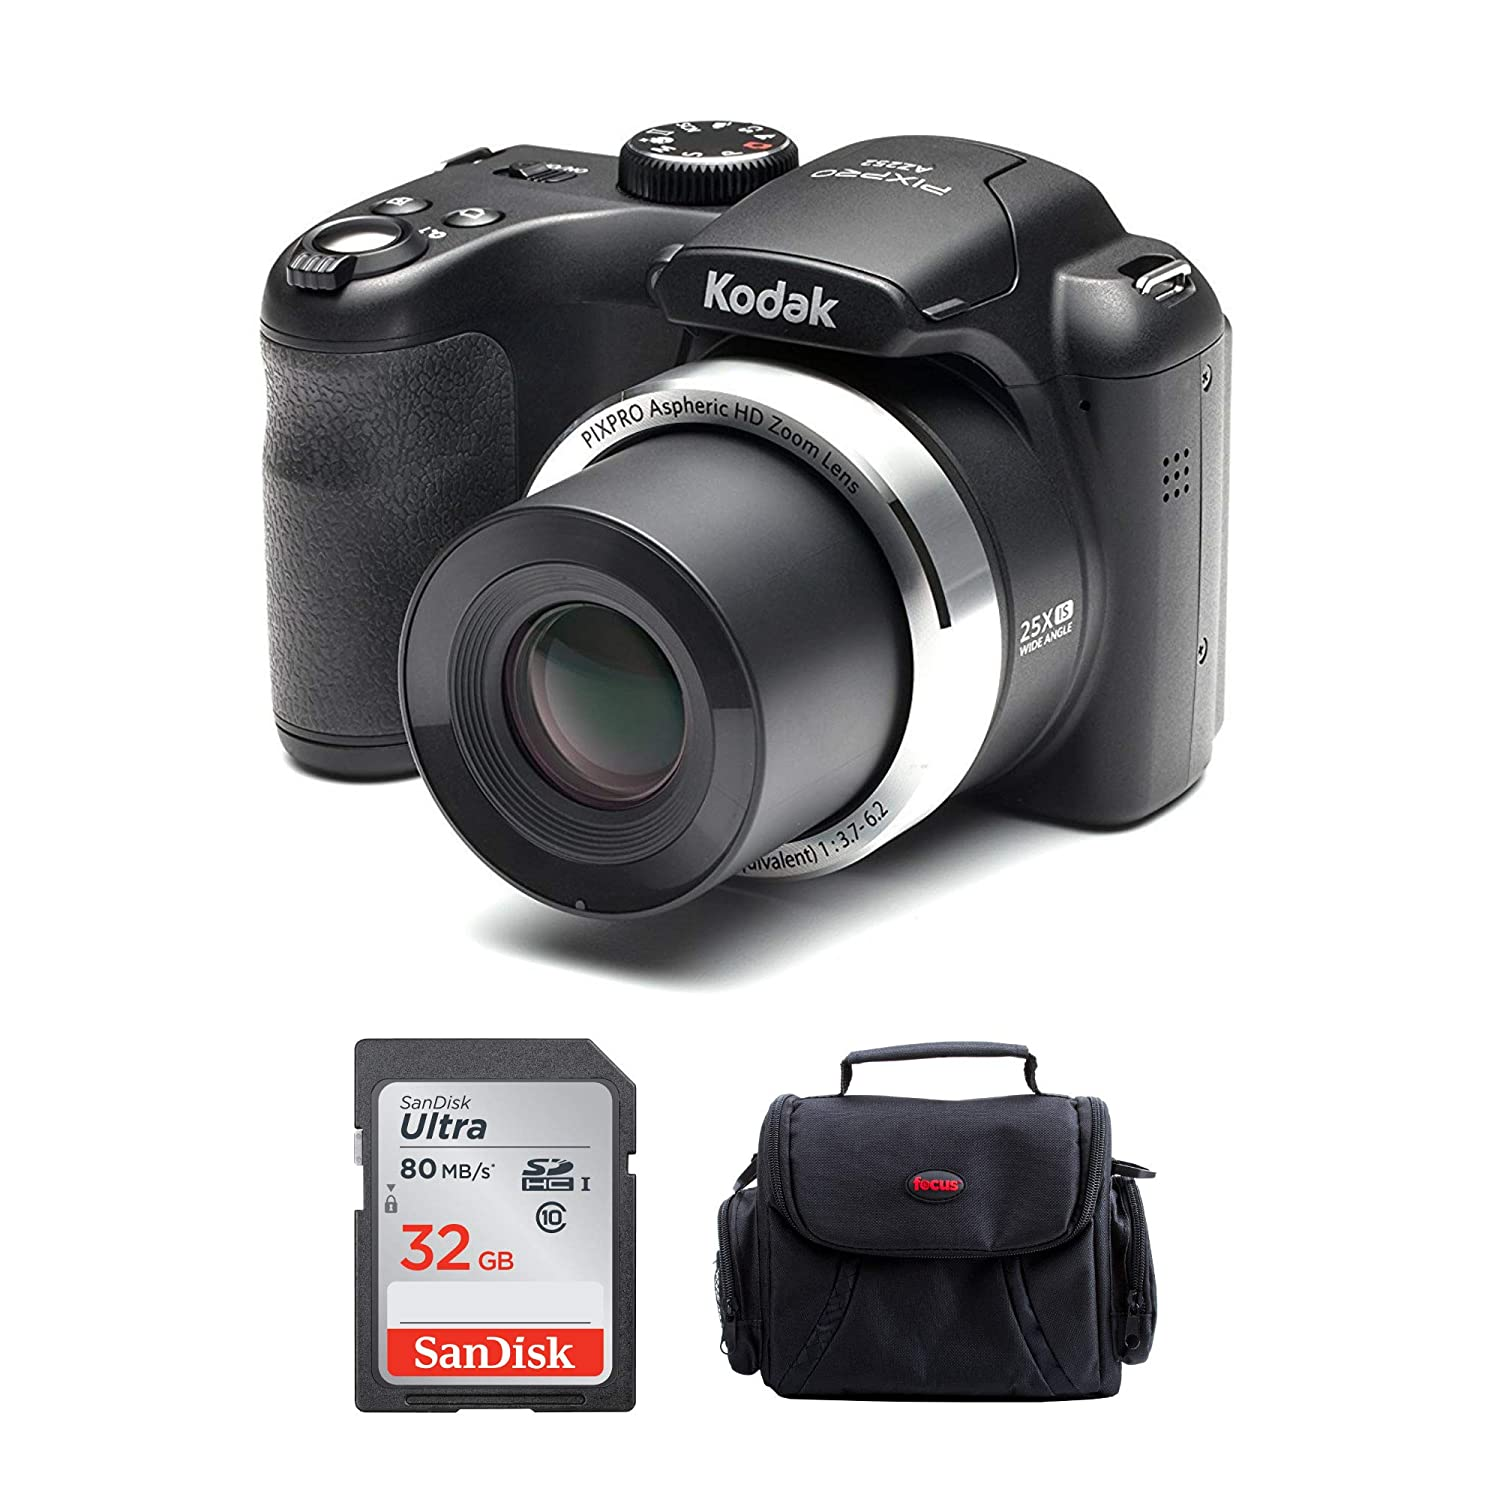 Kodak PIXPRO AZ252 Astro Zoom Digital Camera (Black) with 32GB SD Card and Case